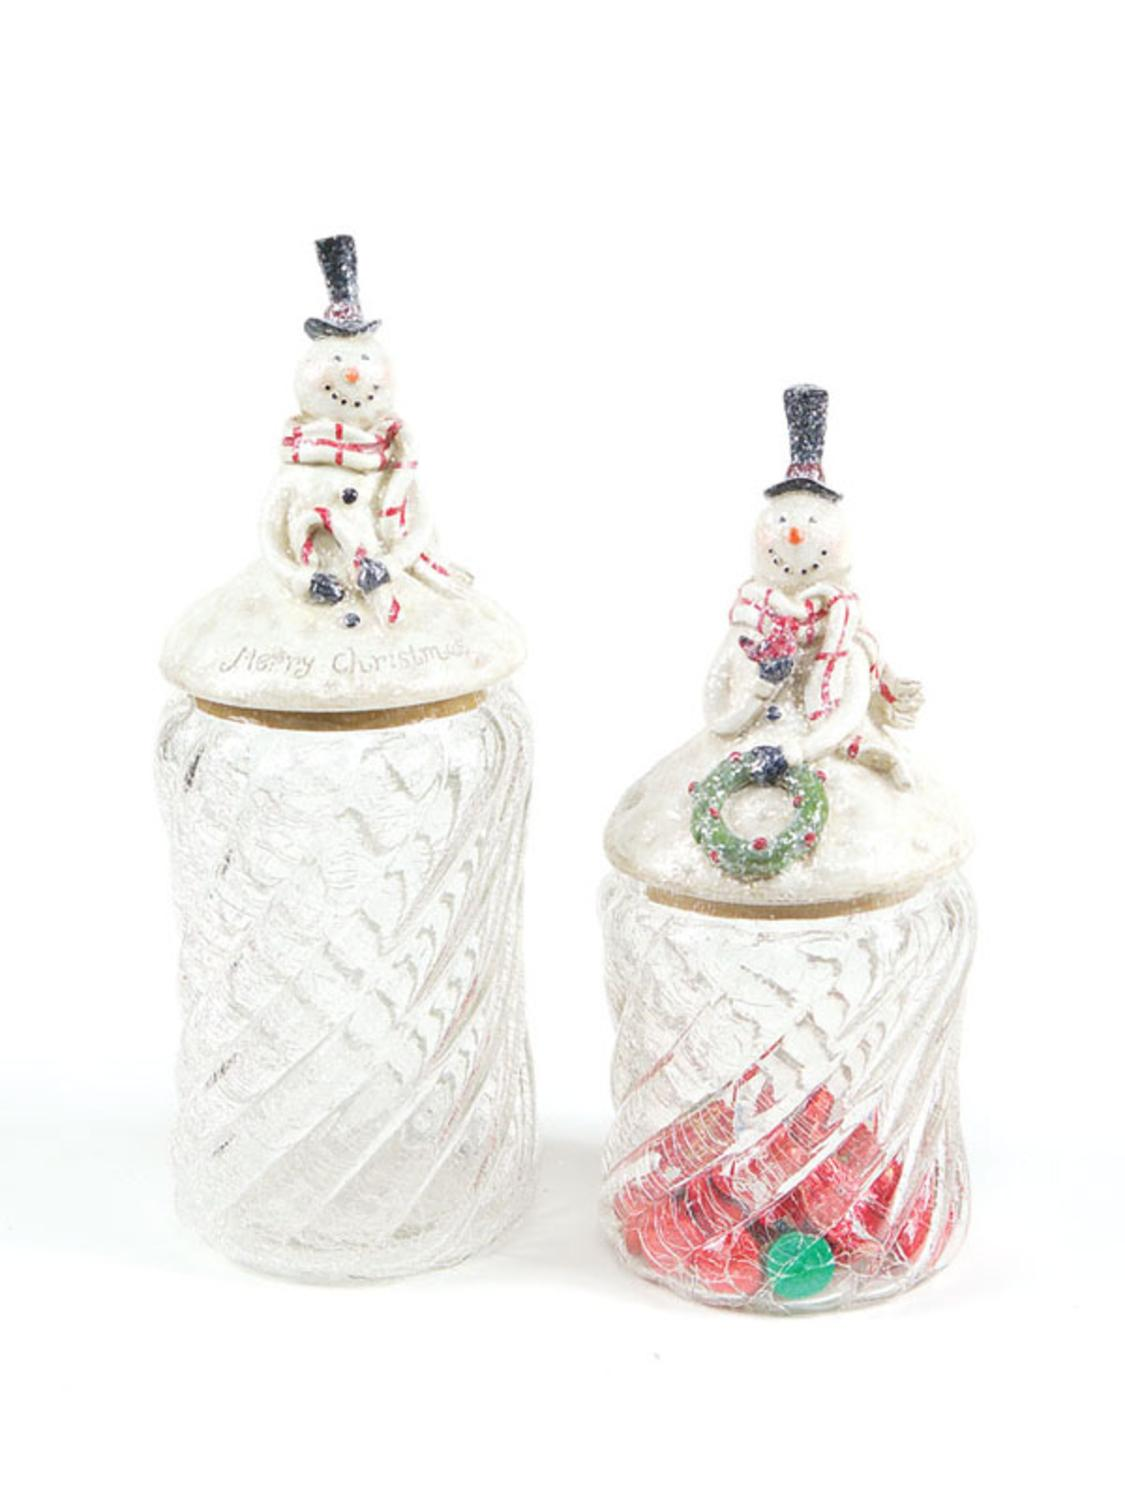 Pack of 4 Eco Country Decorative Christmas Snowman Glass Kitchen Canisters